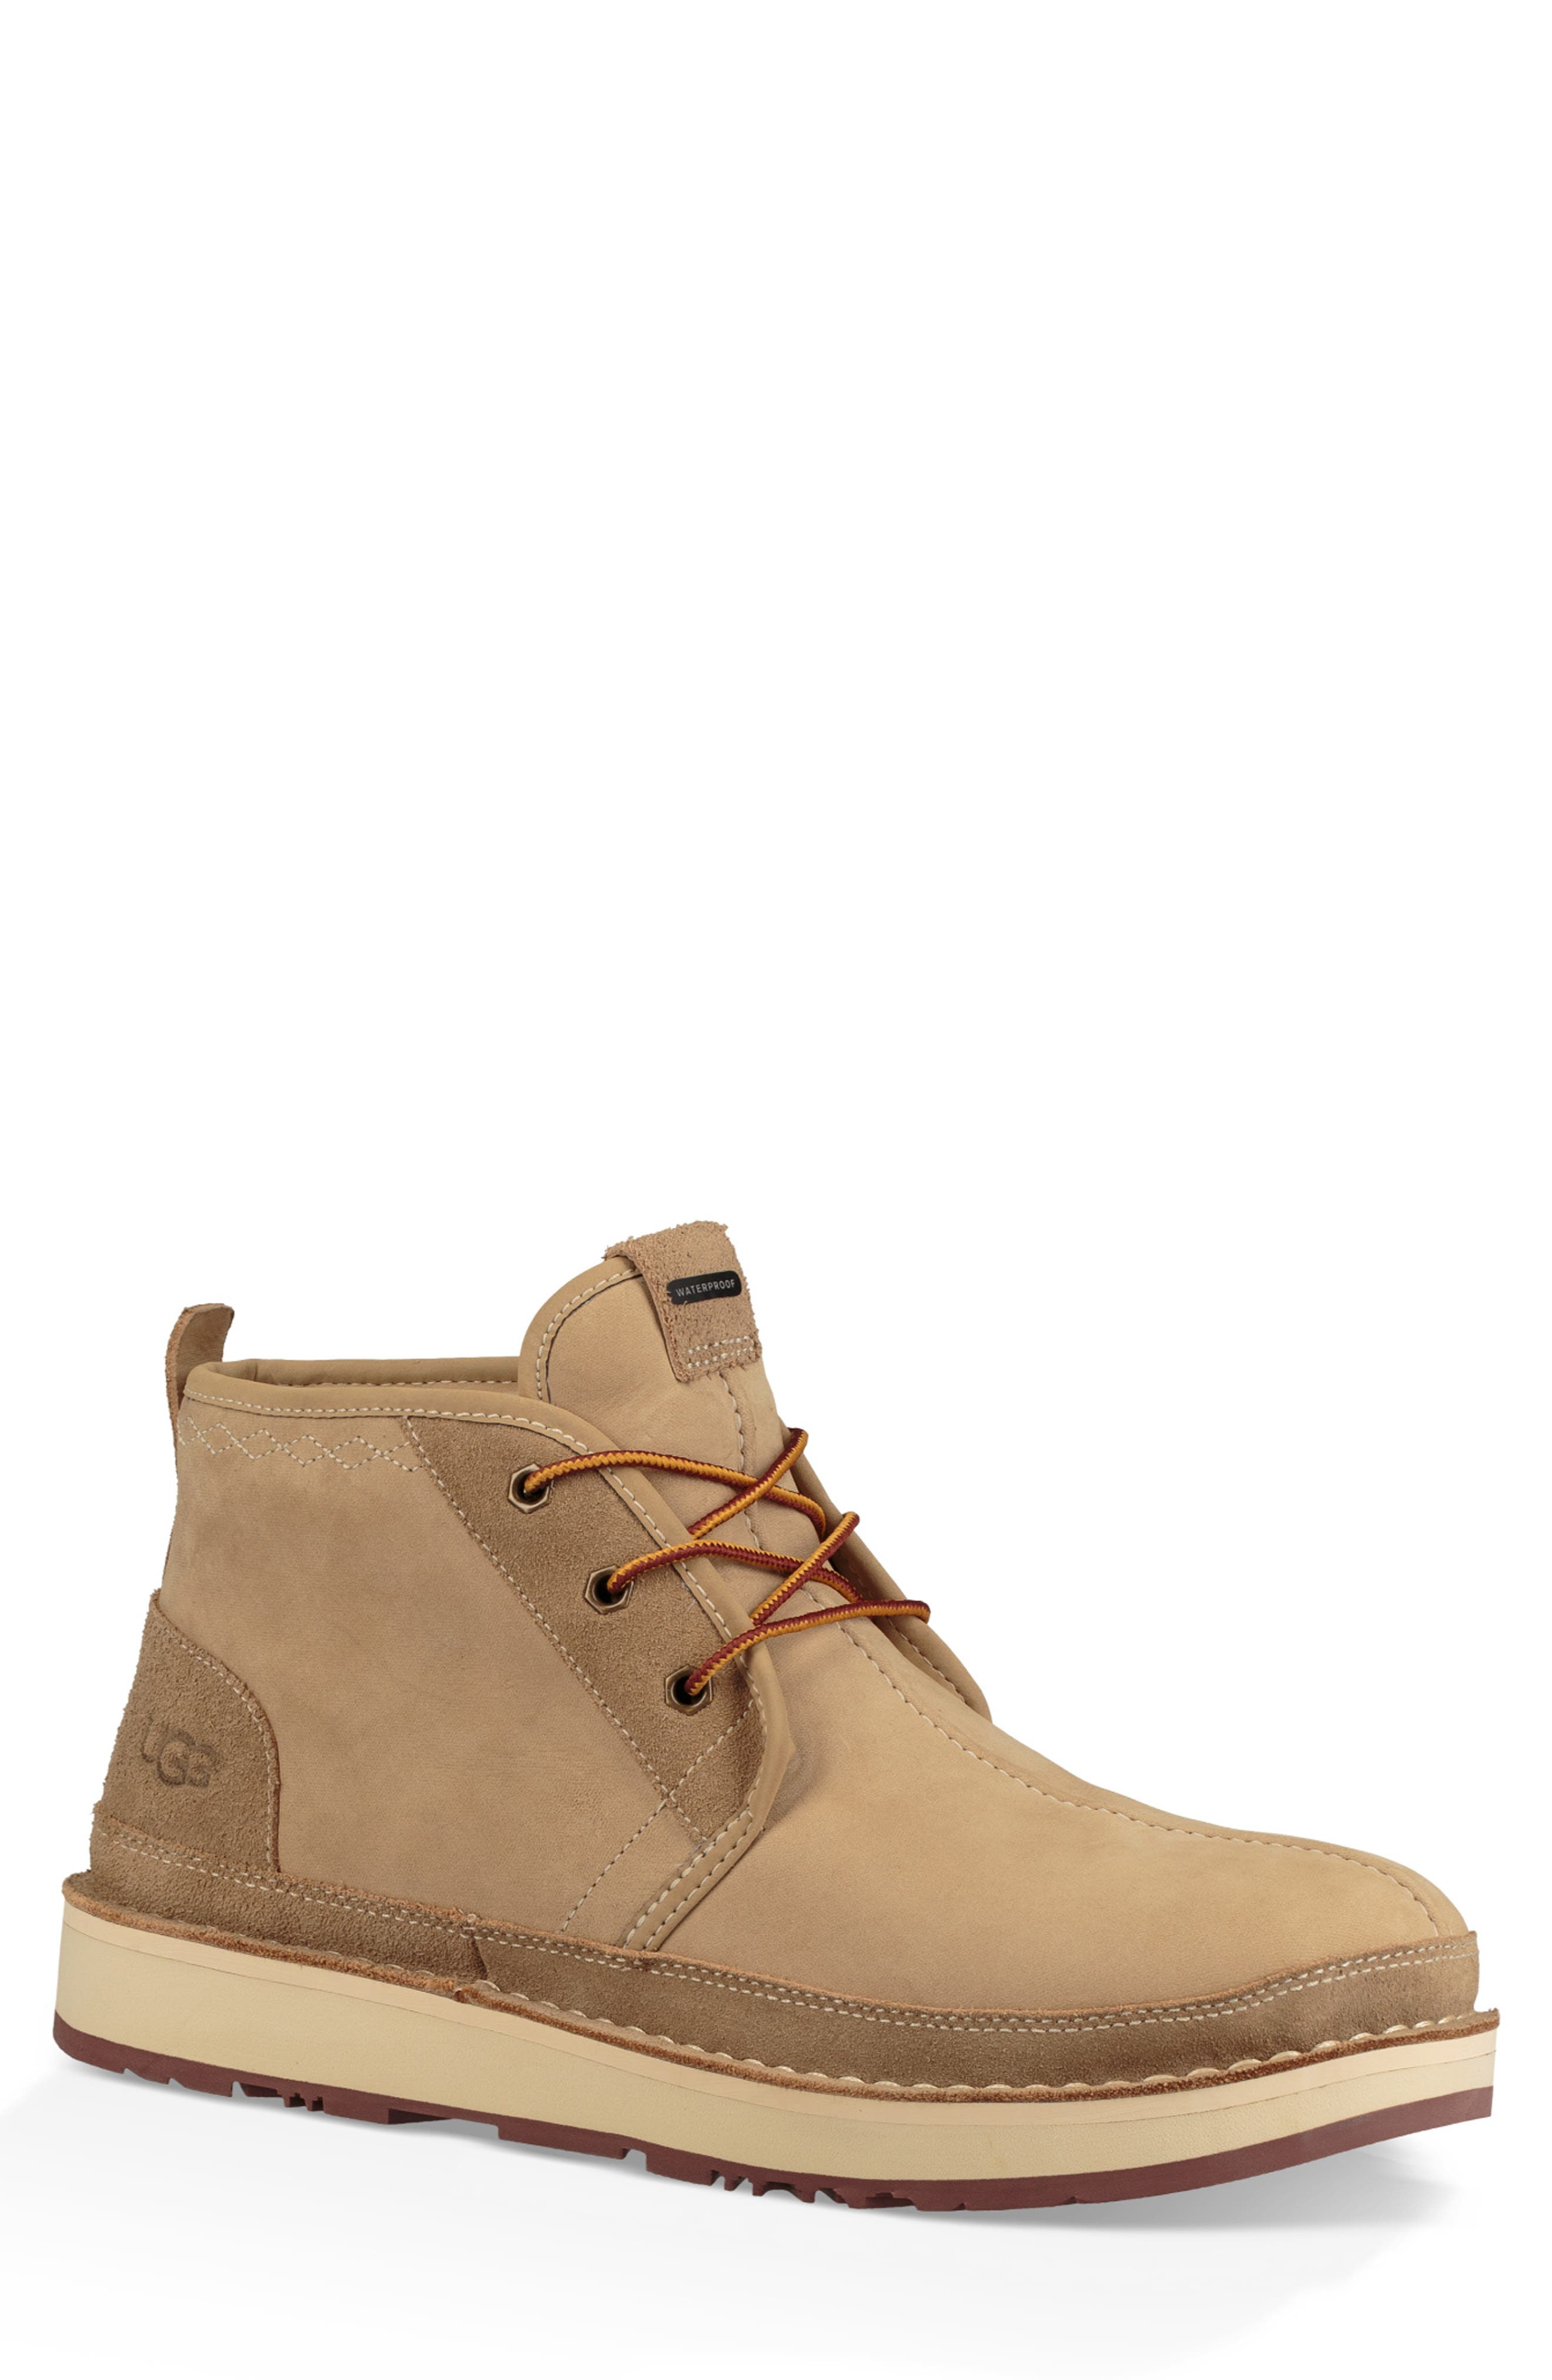 Avalance Neumel Waterproof Boot,                             Main thumbnail 1, color,                             DESERT TAN